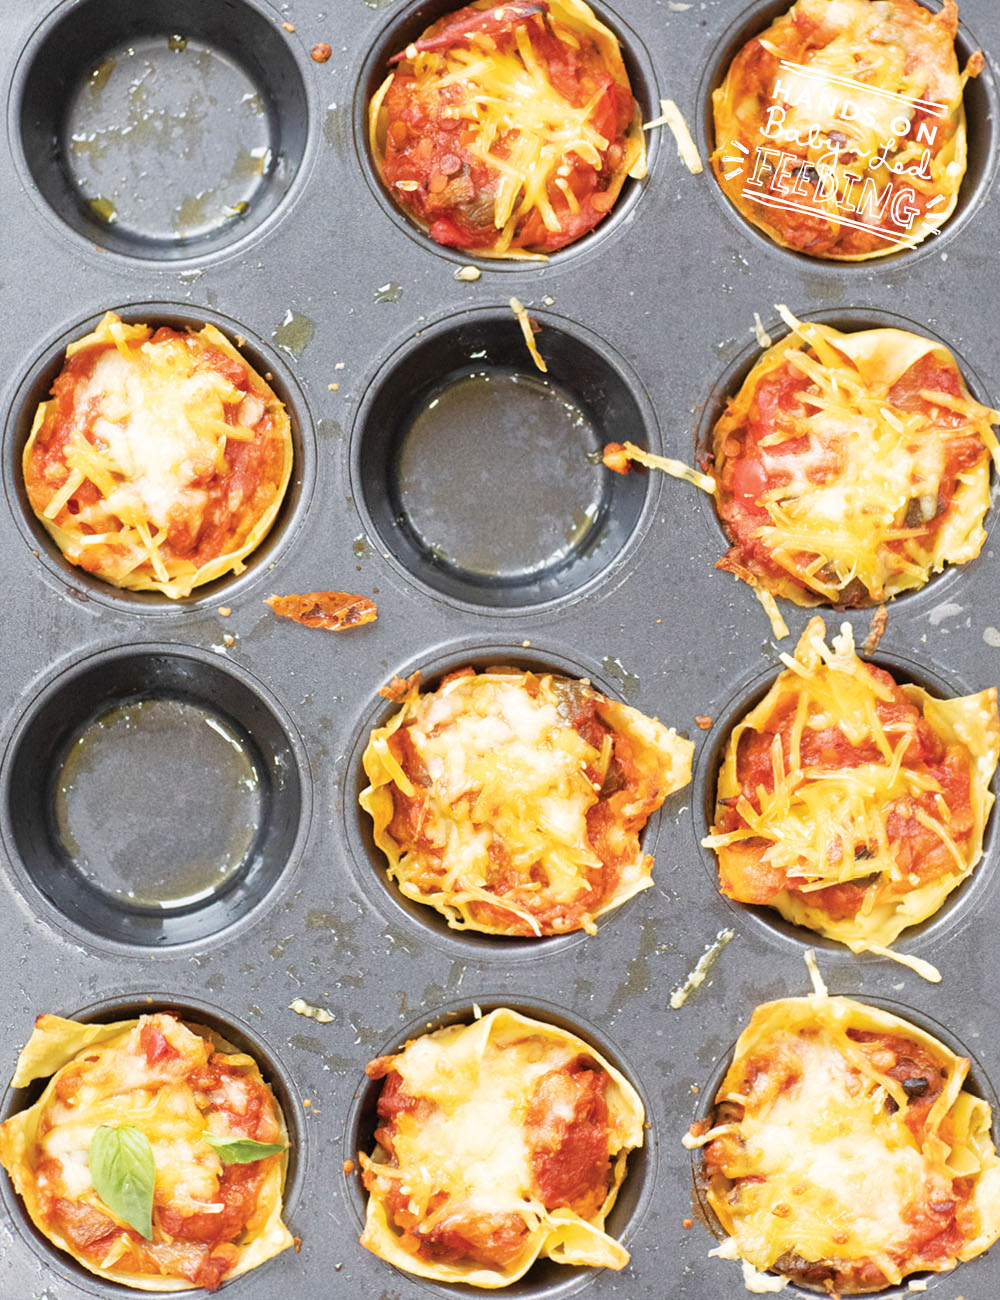 Dairy Free Lasagna recipe for baby led weaning. Healthy finger food for babies 6 months old or older. Egg-free, dairy-free, and Vegan dinner recipe. #veganrecipe #babyledweaning #dairyfree #eggfree #plantbased #fingerfood